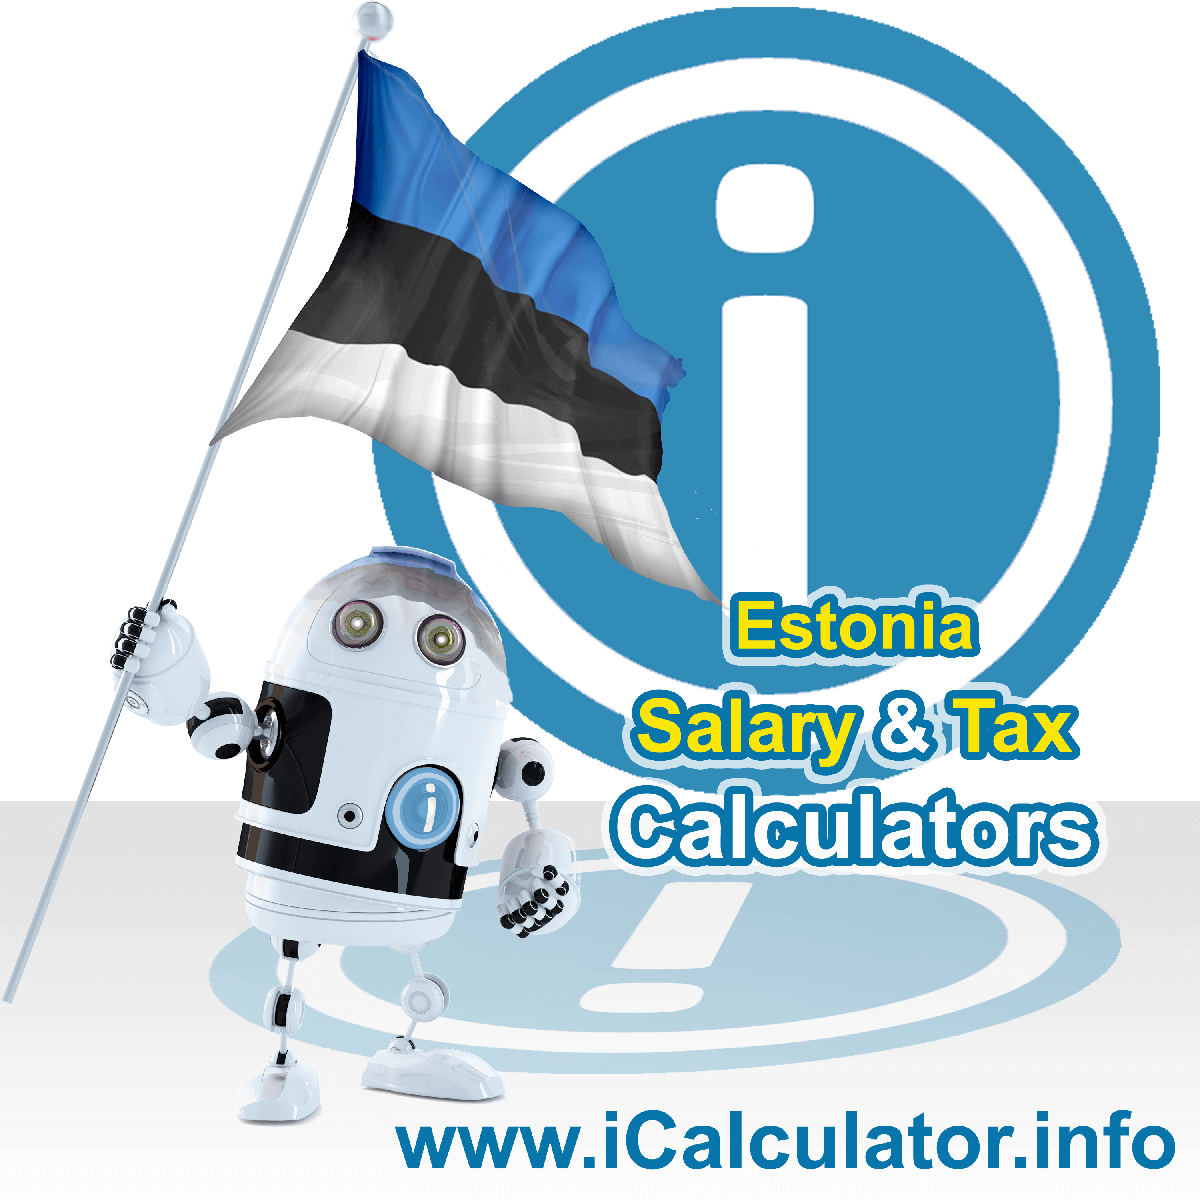 Estonia Salary Calculator. This image shows the Estoniaese flag and information relating to the tax formula for the Estonia Tax Calculator